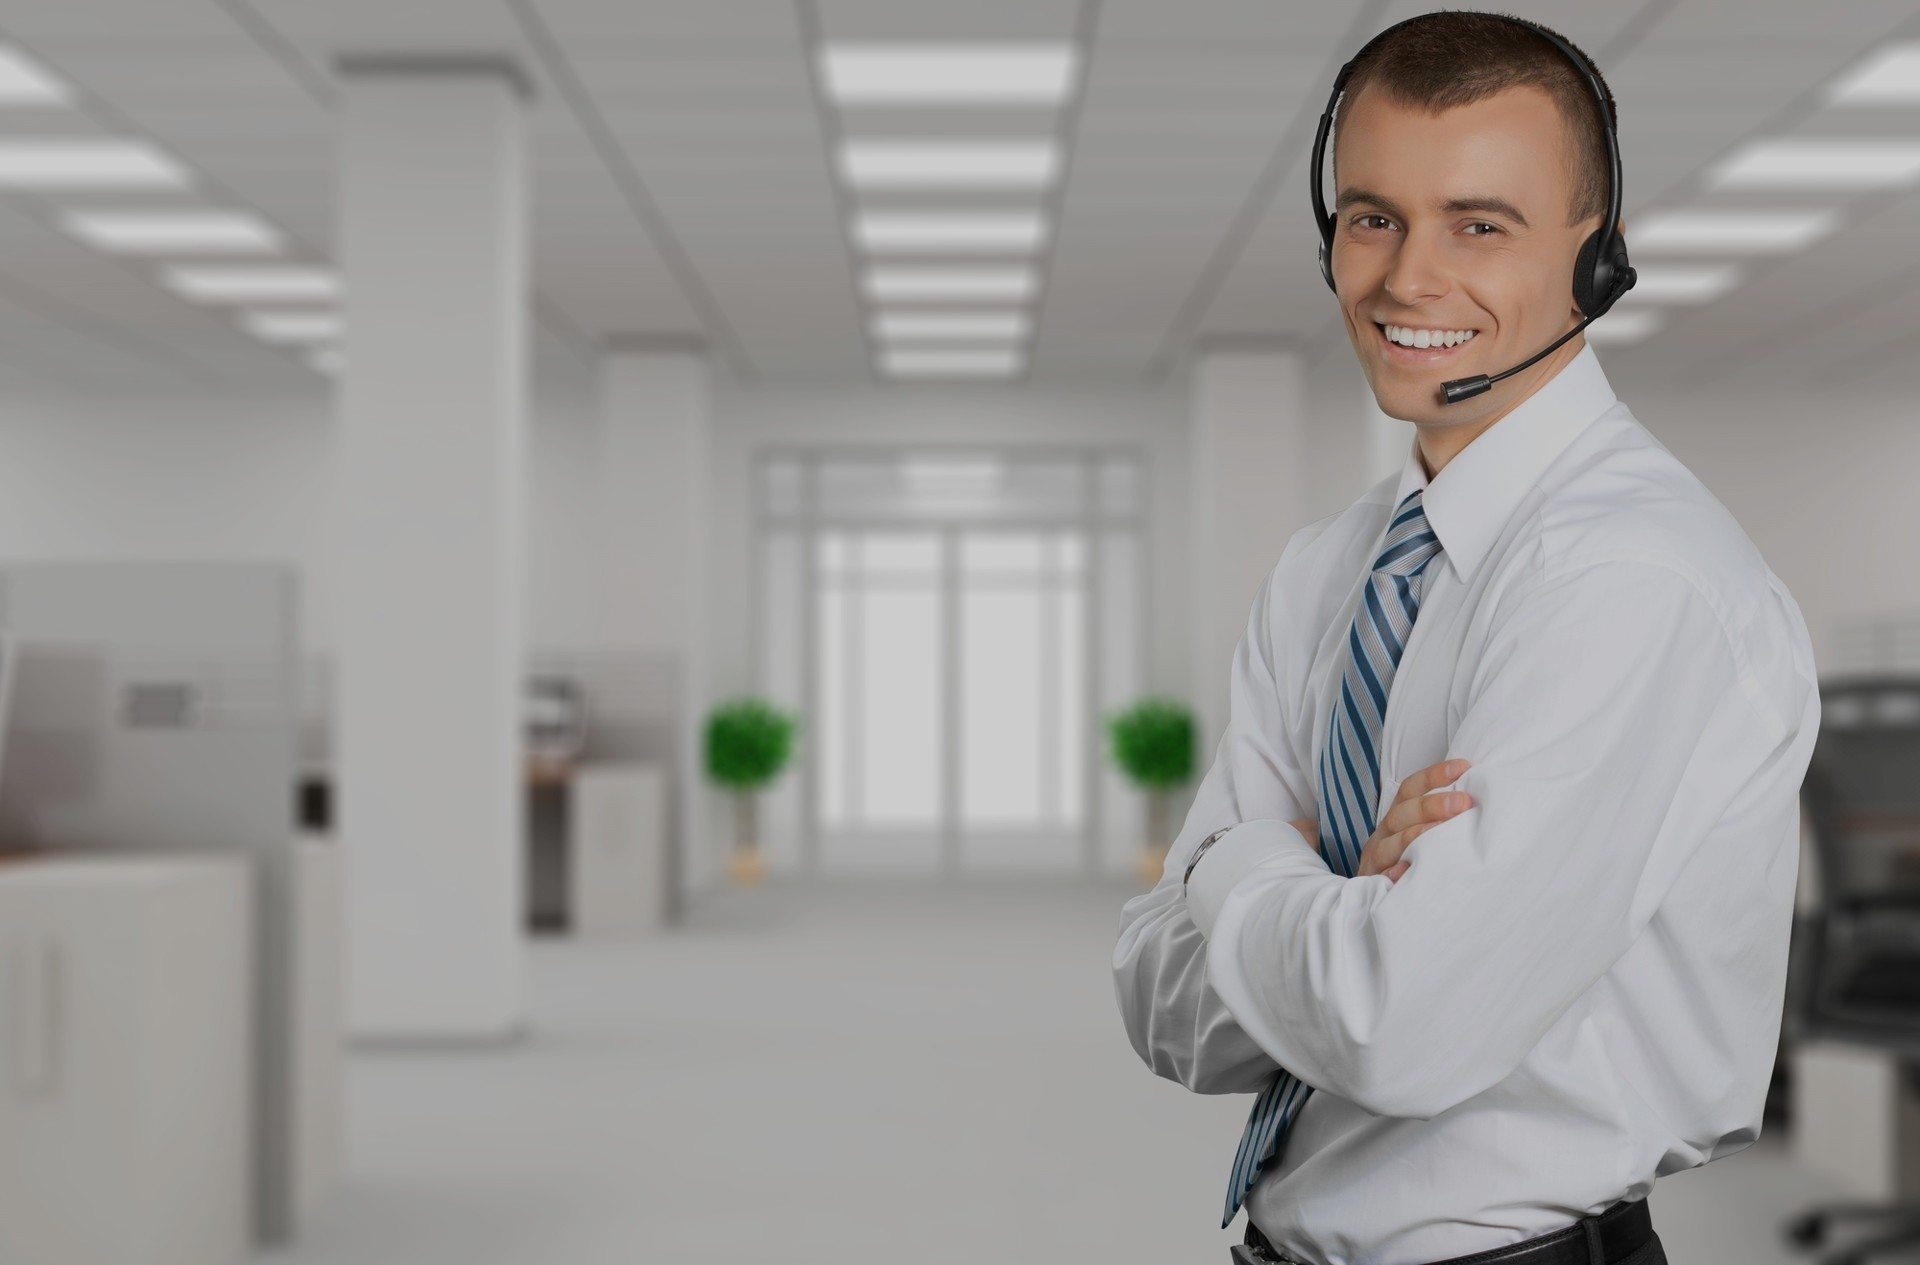 IT Support One